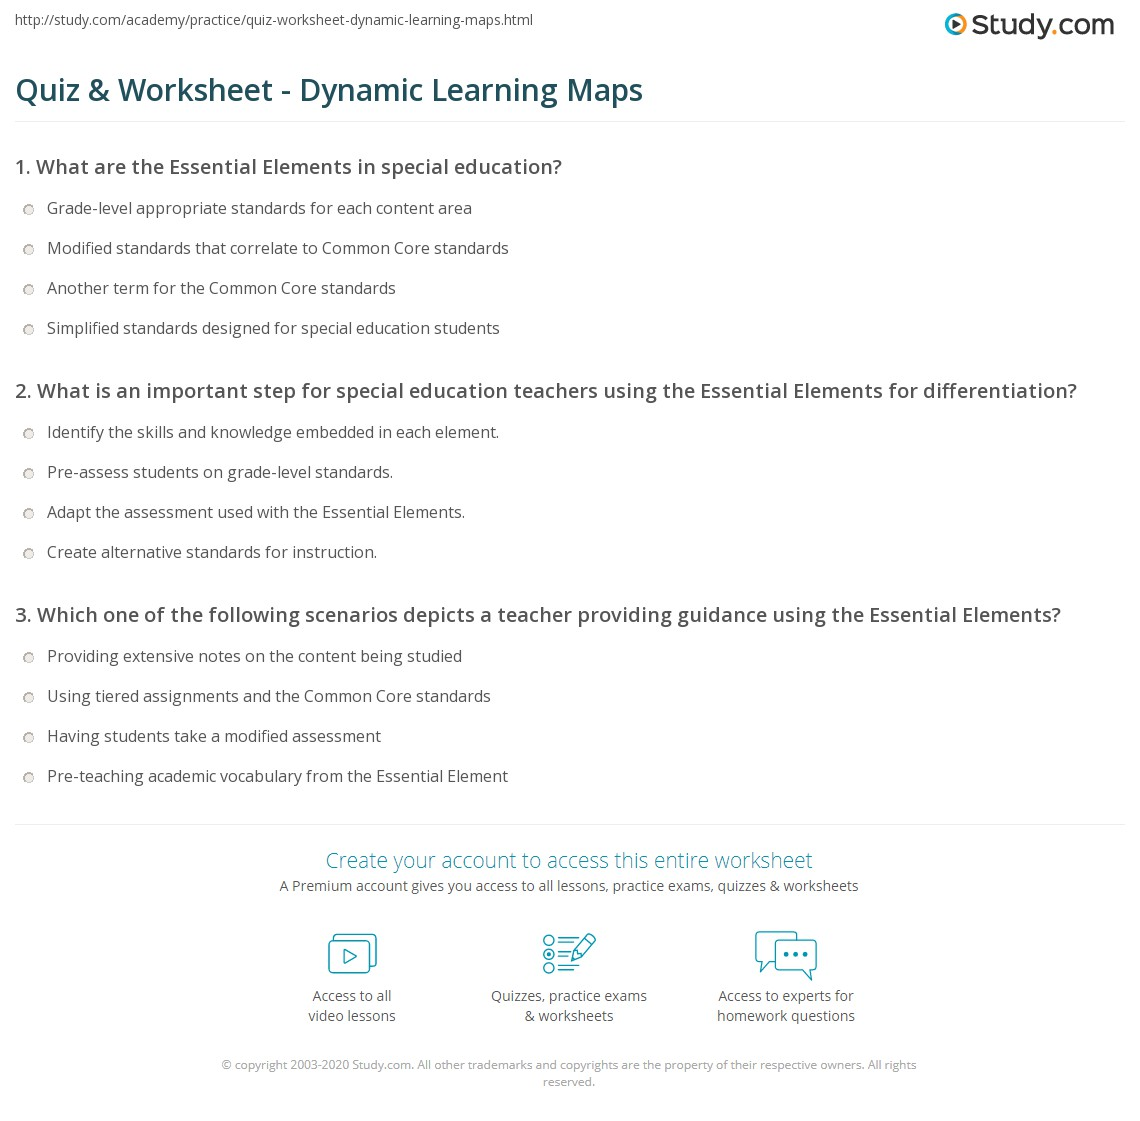 quiz  worksheet  dynamic learning maps  studycom - print essential elements of general curriculum for special educationworksheet